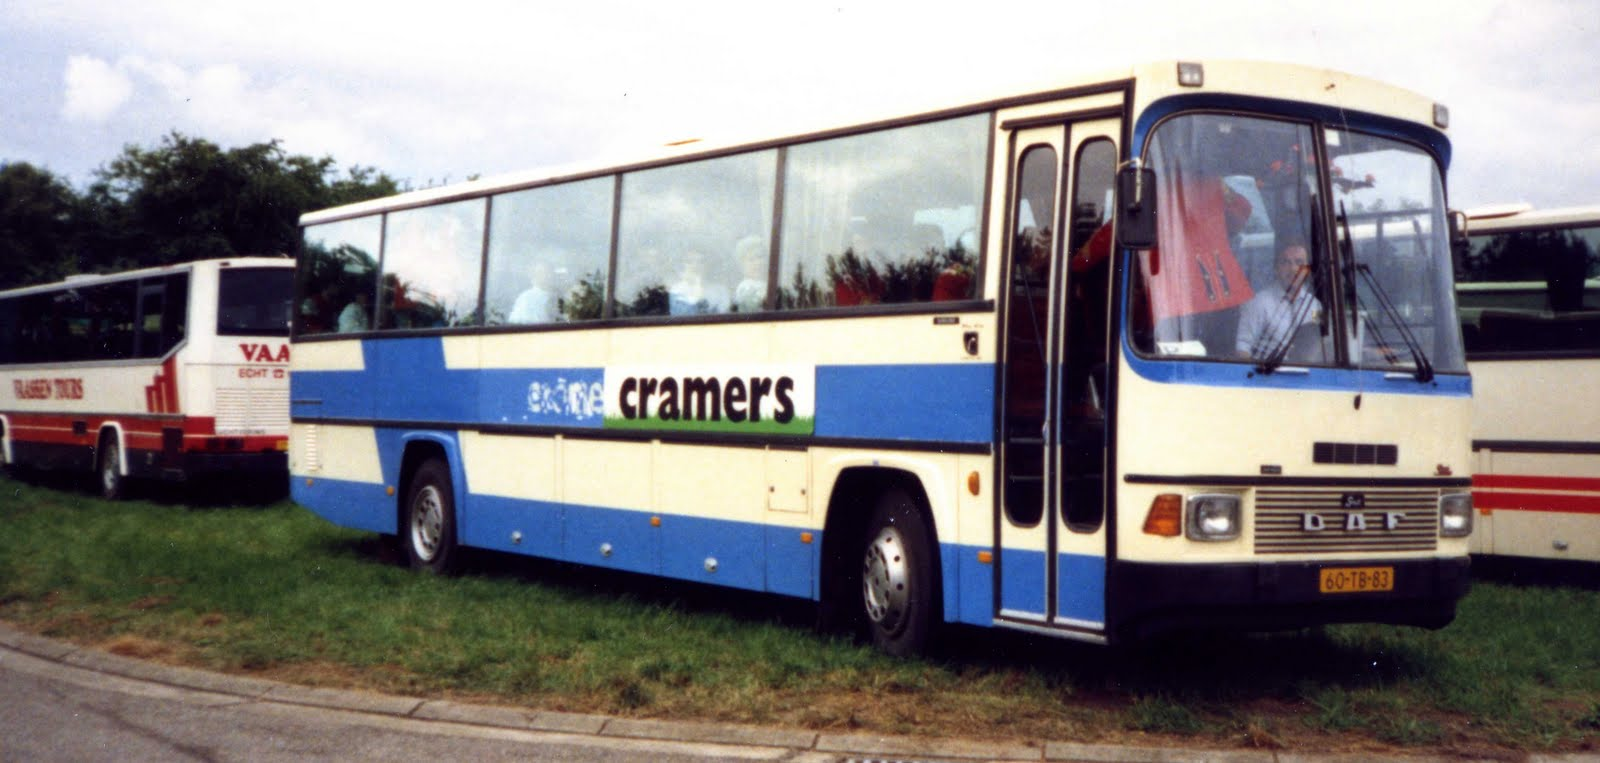 Cramers 1980 8 DAF Smit Joure